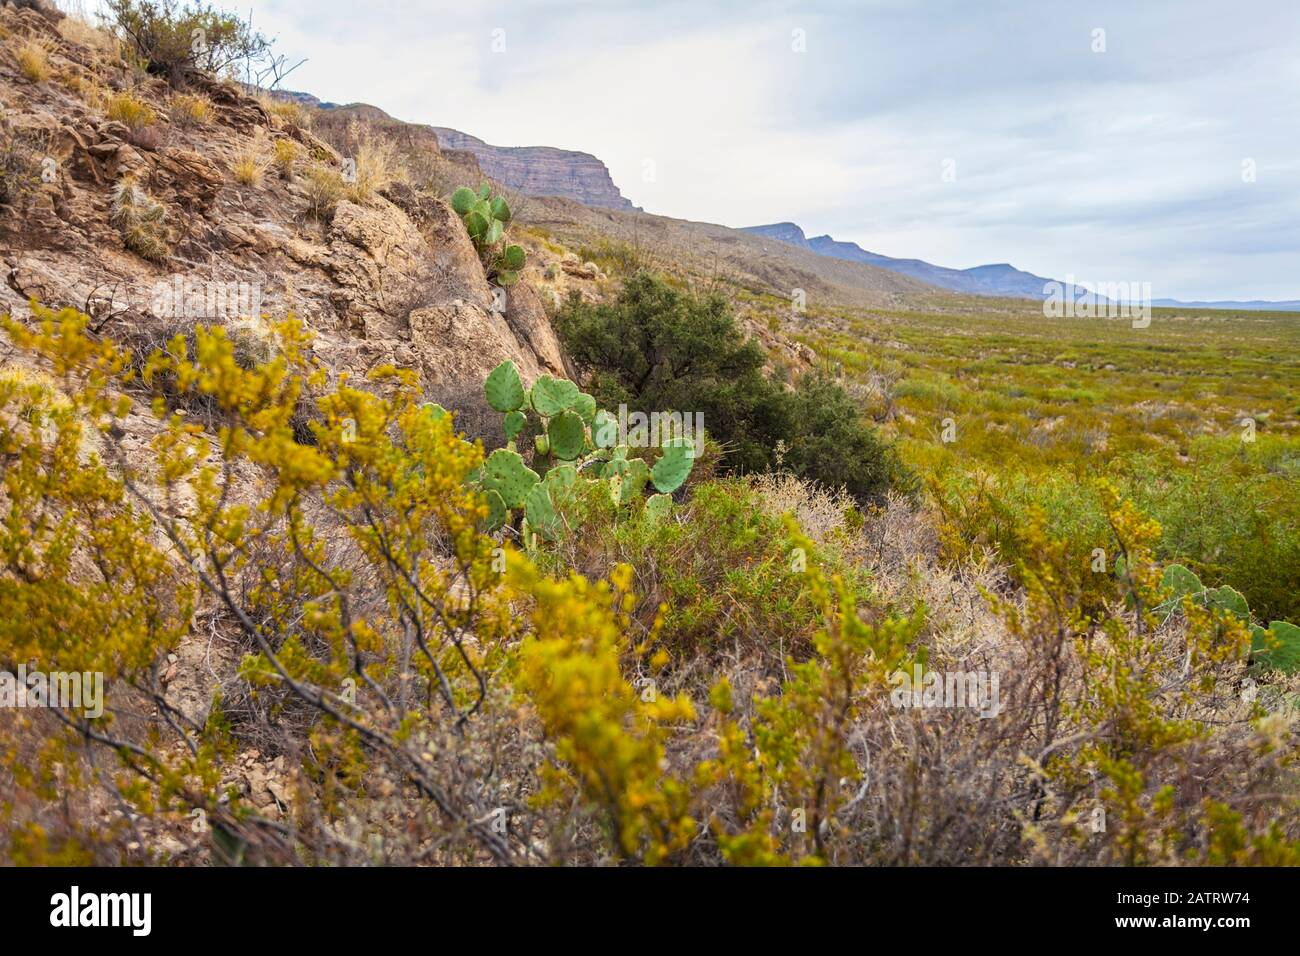 Dog Canyon National Recreational Trail, Sacramento Mountains, Chihuahuan Desert in the Tularosa Basin, Oliver Lee Memorial State Park Stock Photo